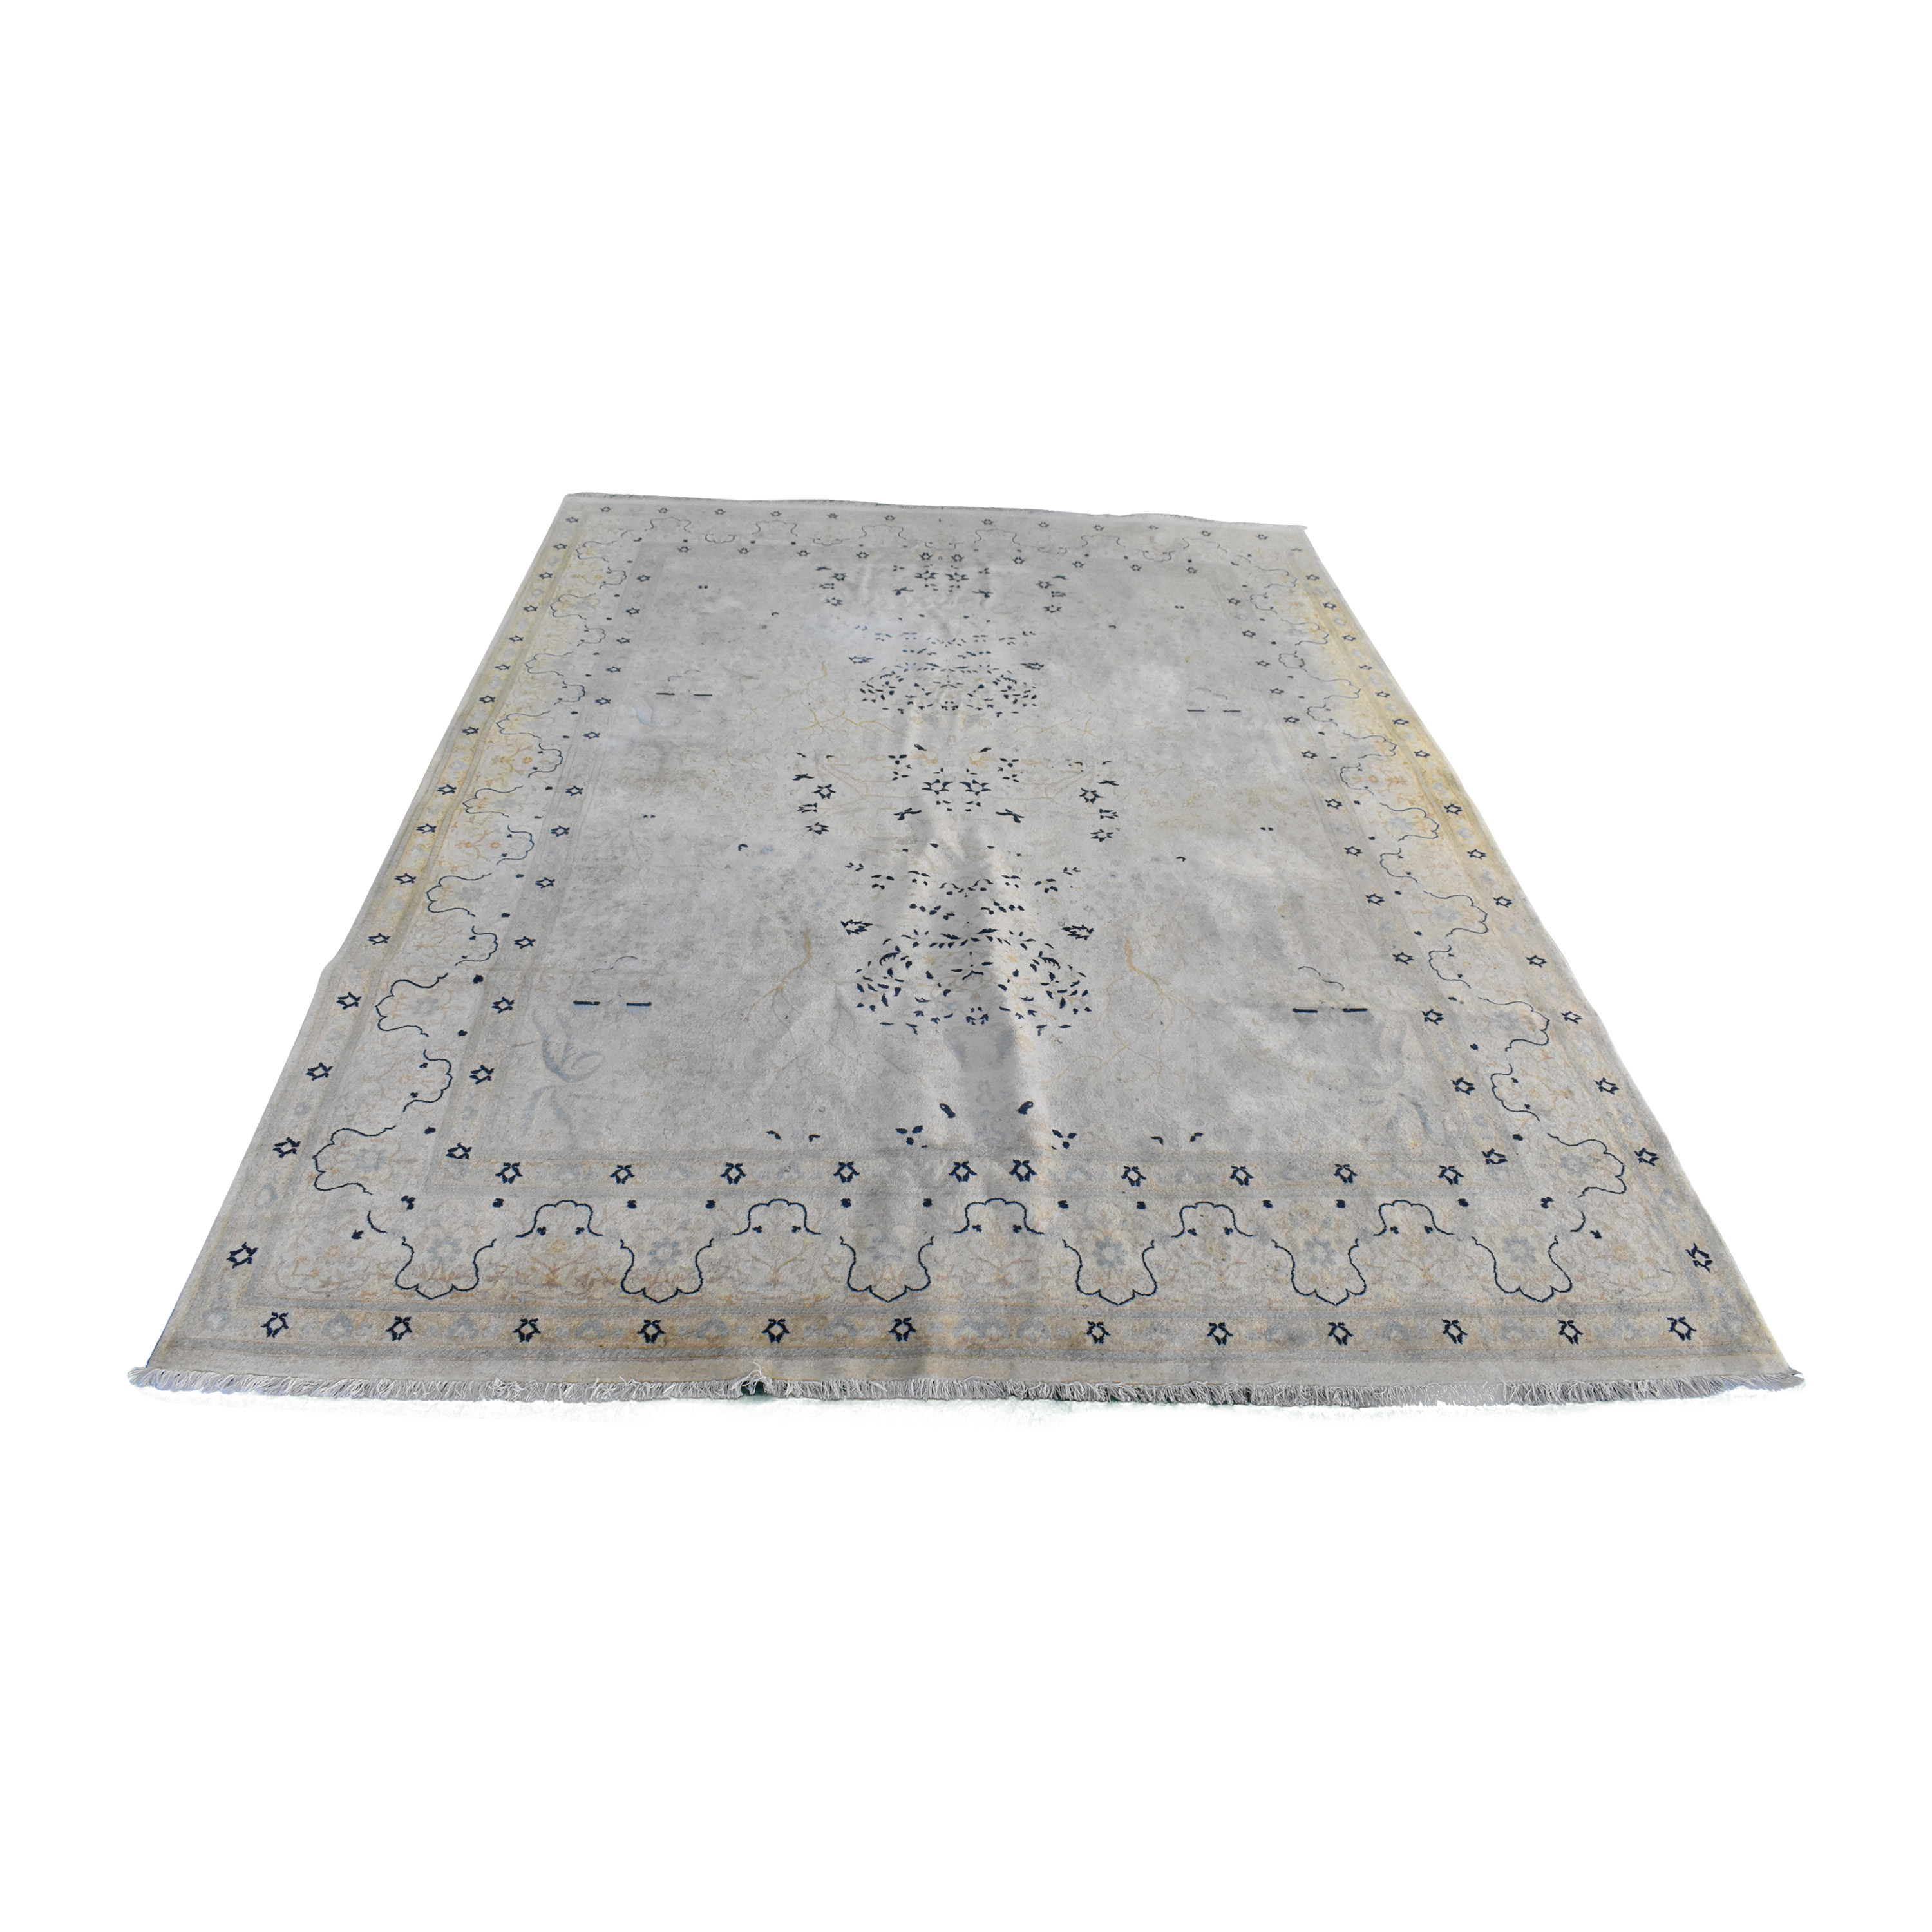 Patterned Area Rug for sale